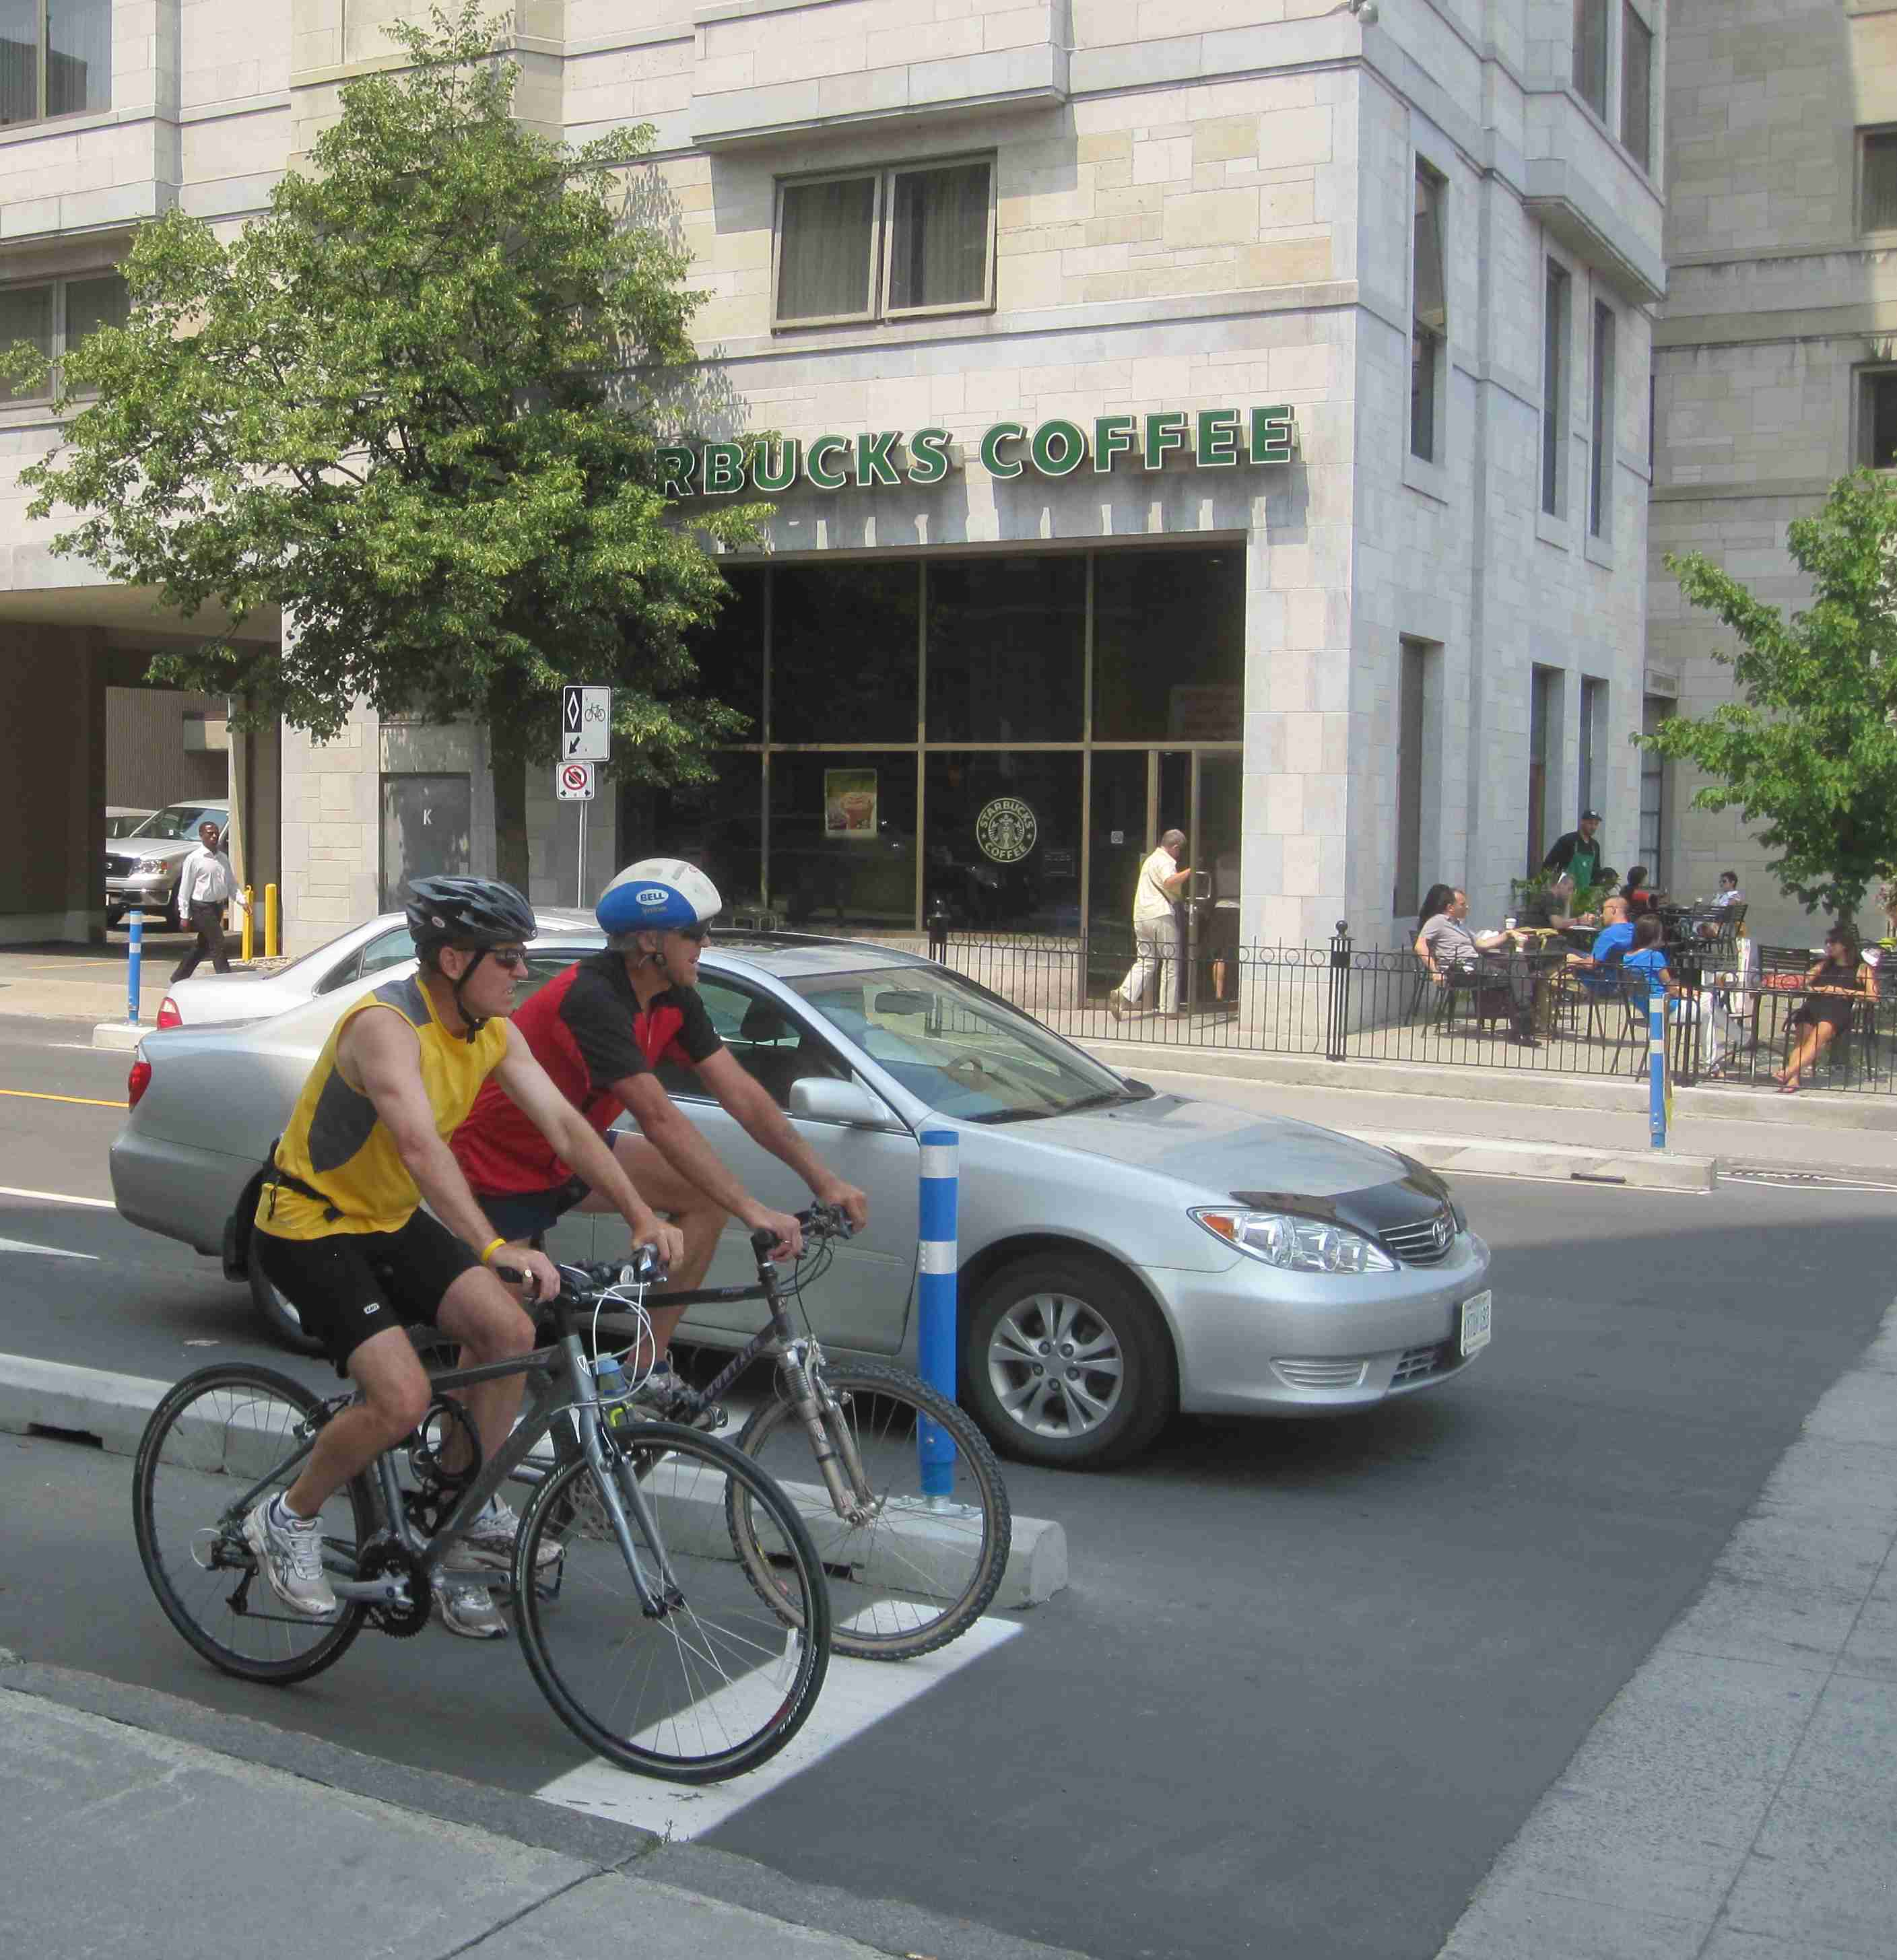 Ottawa Bicycle Culture – Starbucks